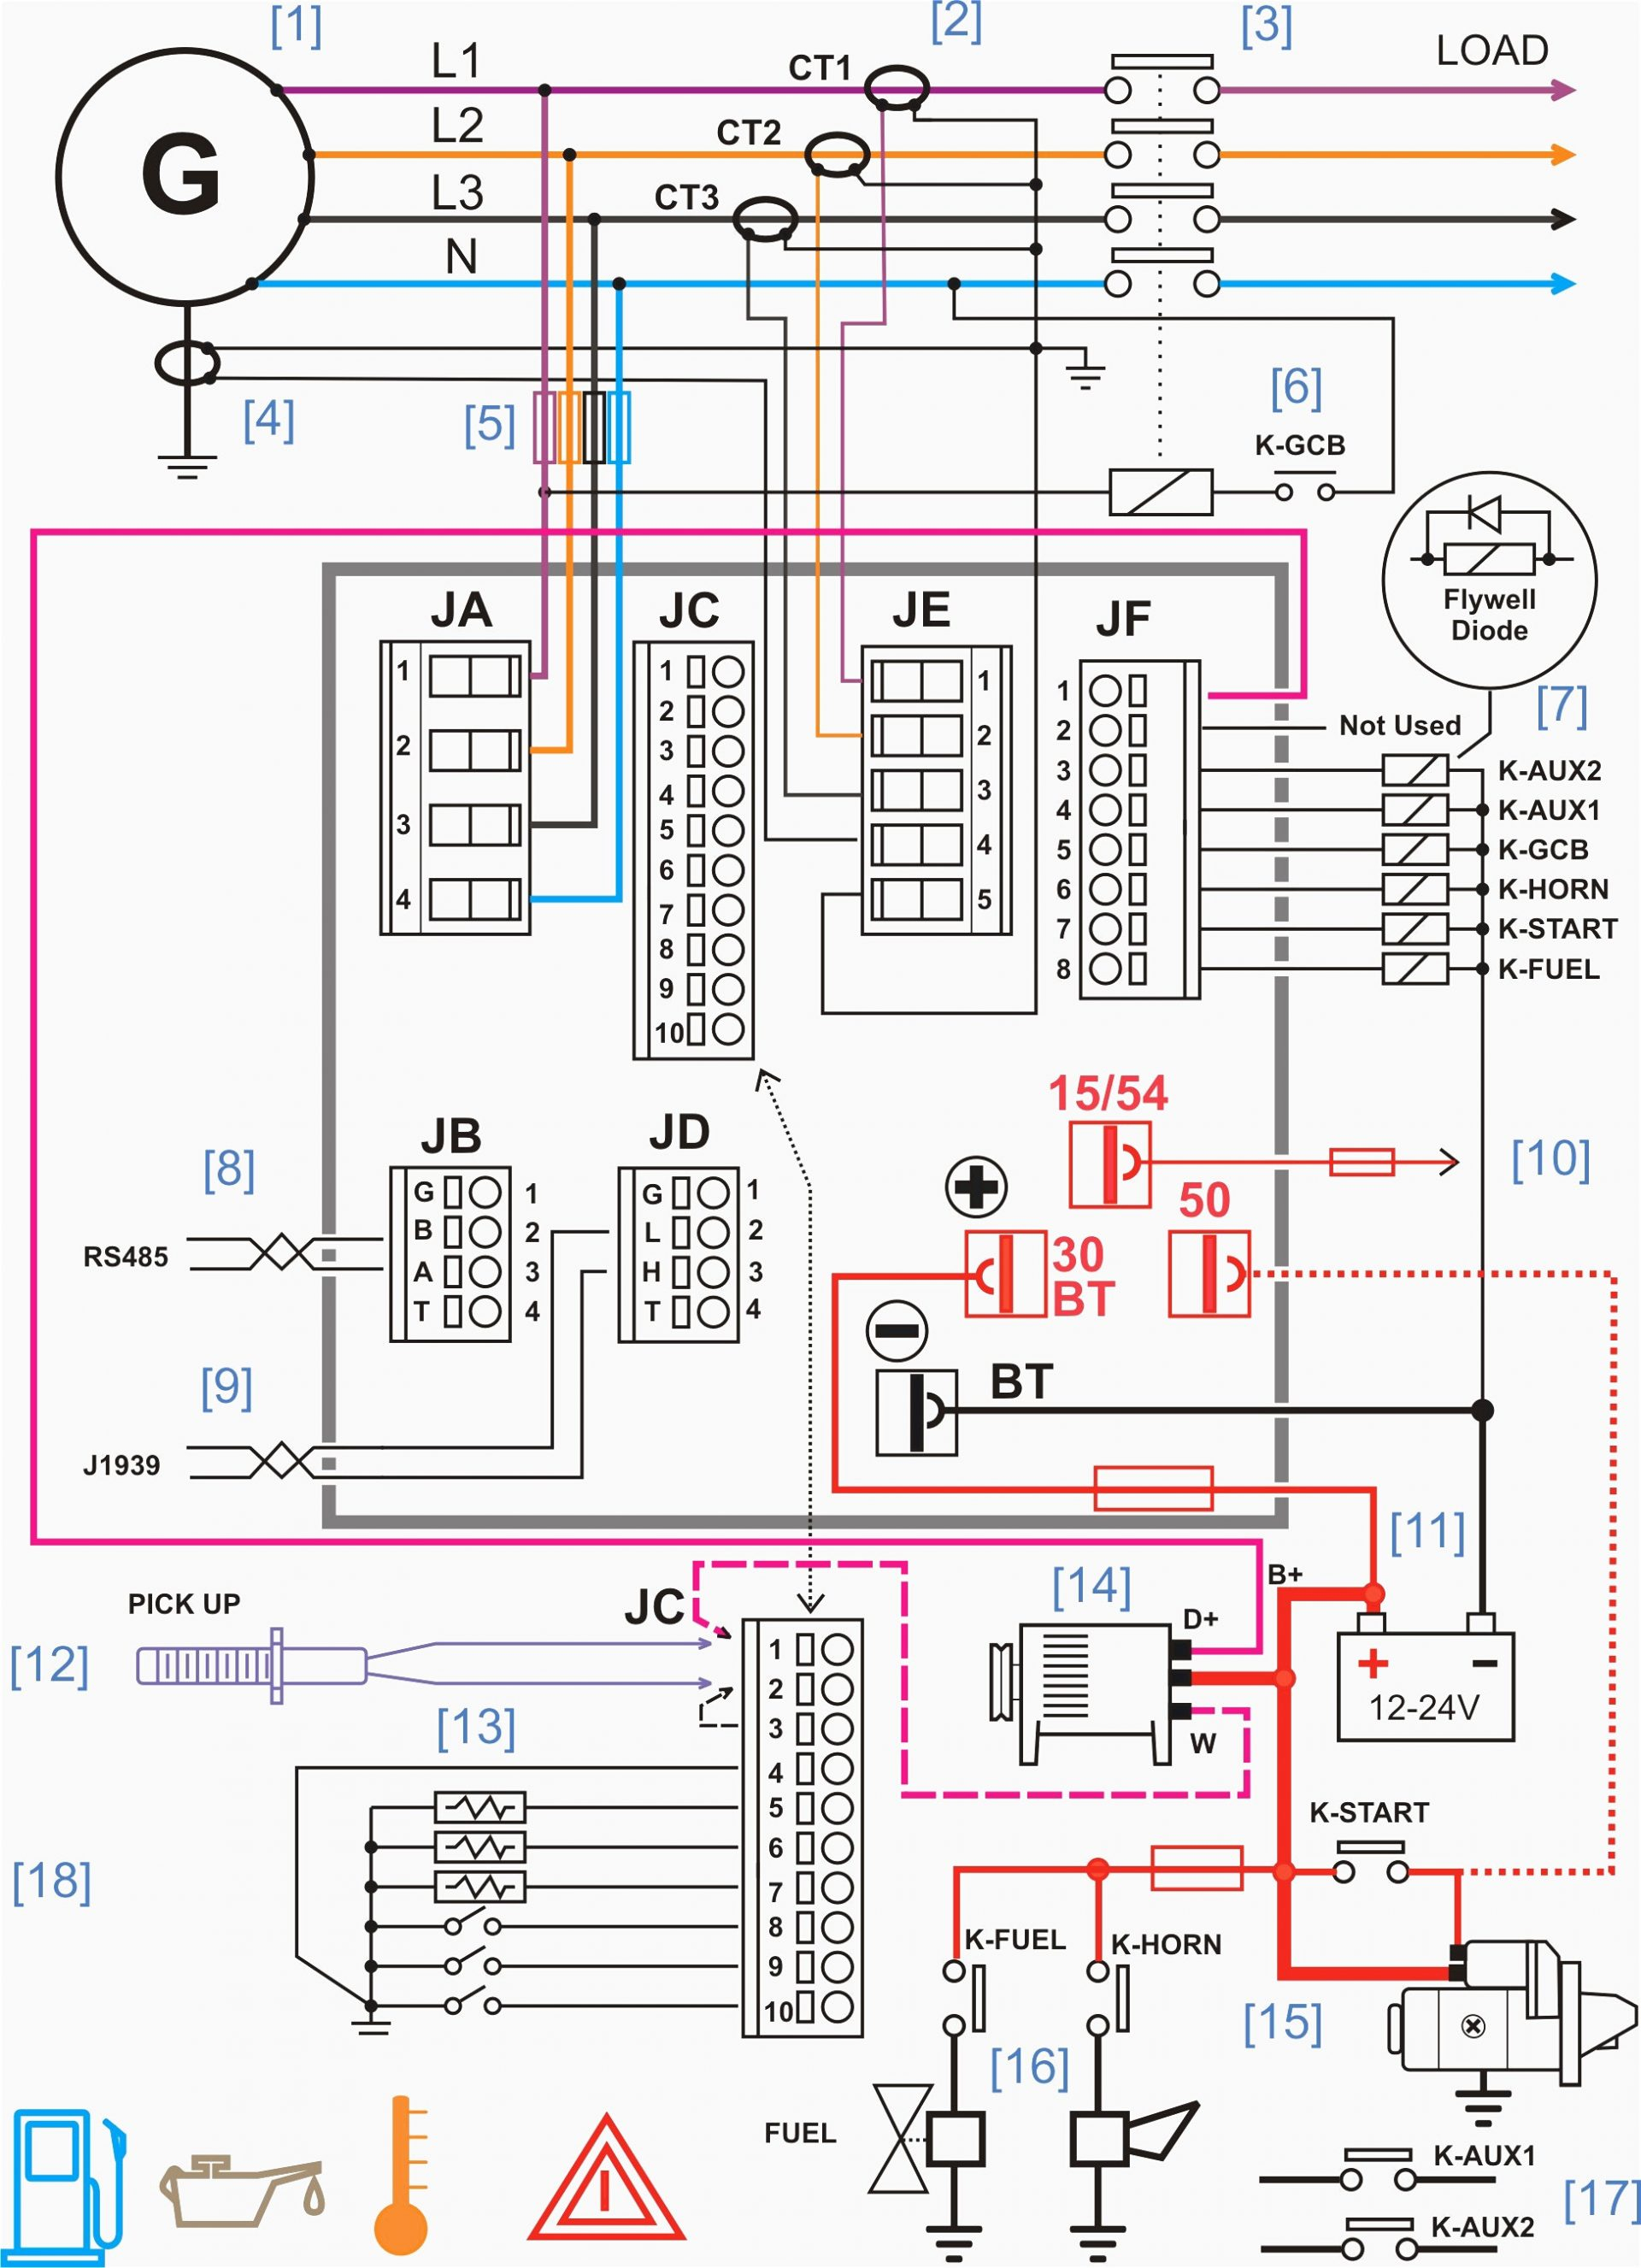 Access control wiring diagram access control system installation pdf lenel access control wiring diagram sample wiring diagram sample door access control system wiring diagram pdf asfbconference2016 Gallery